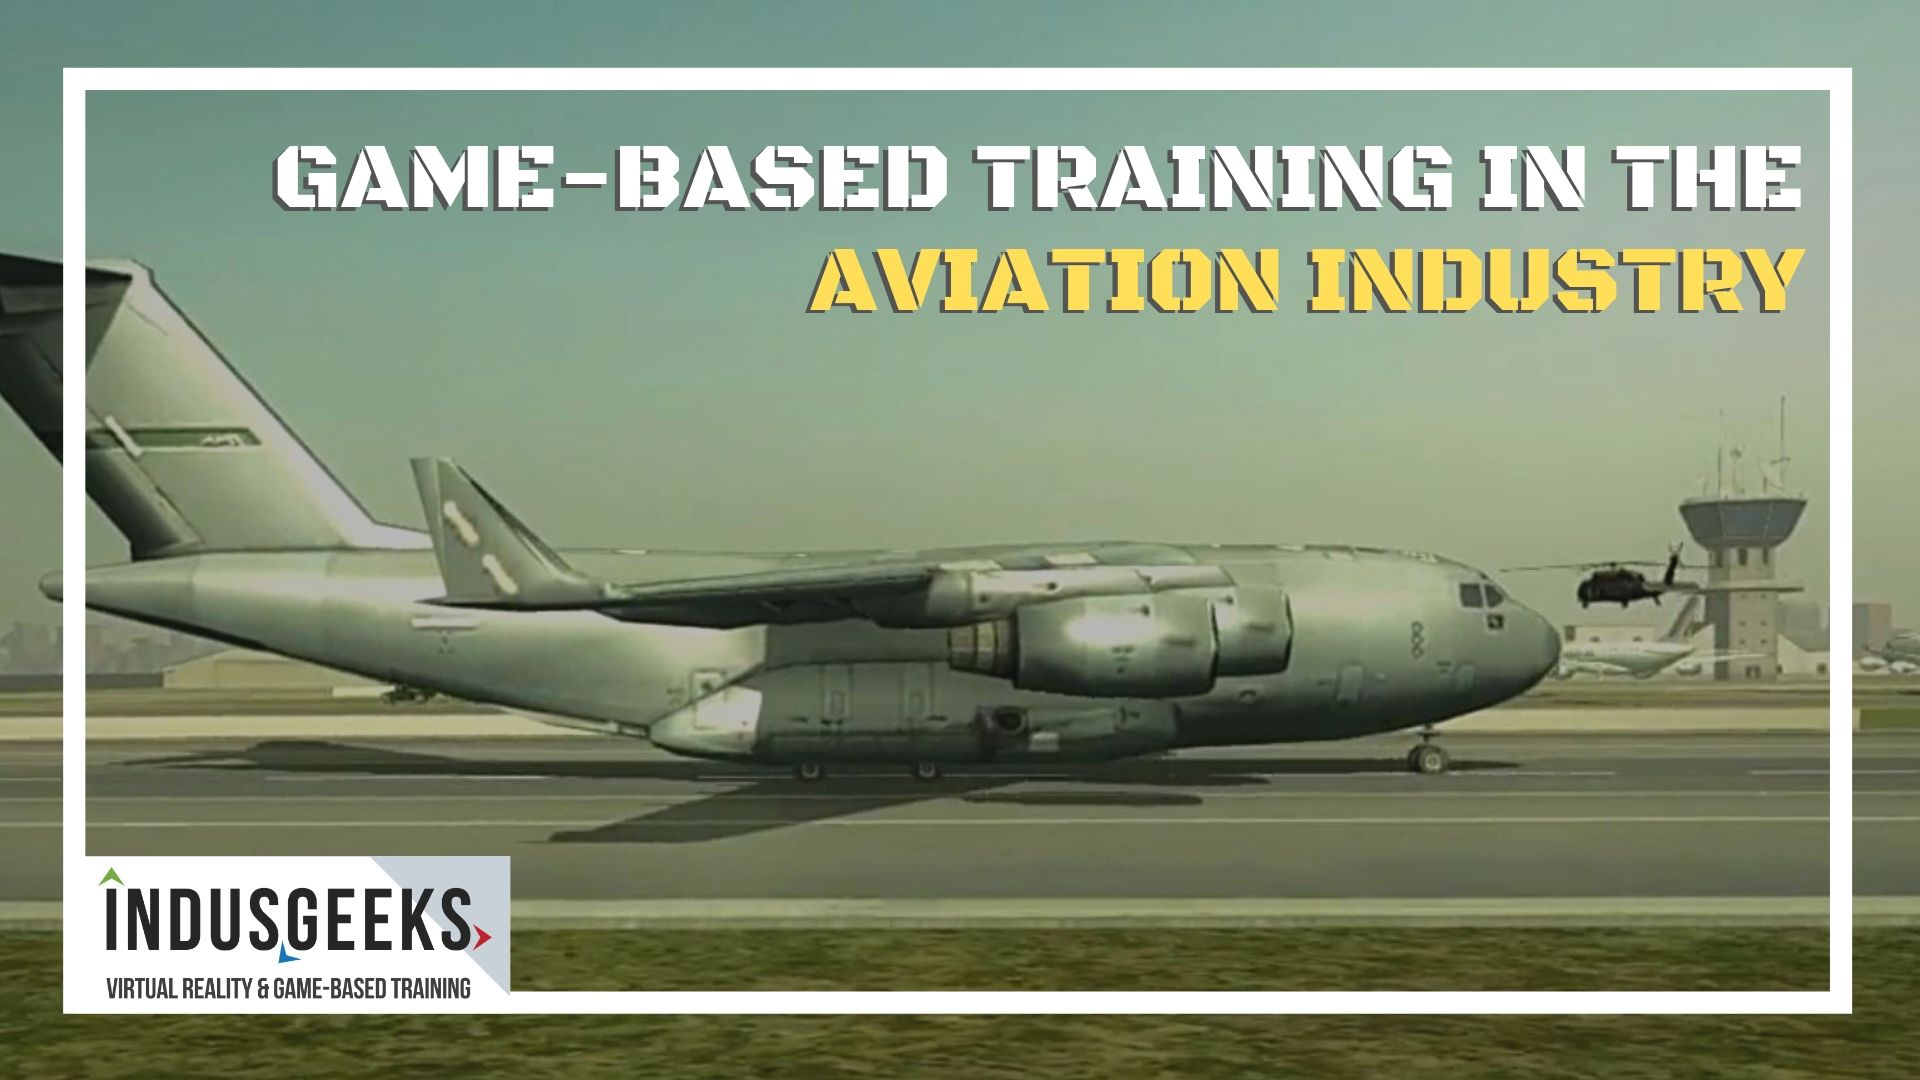 Game-based training in the aviation industry